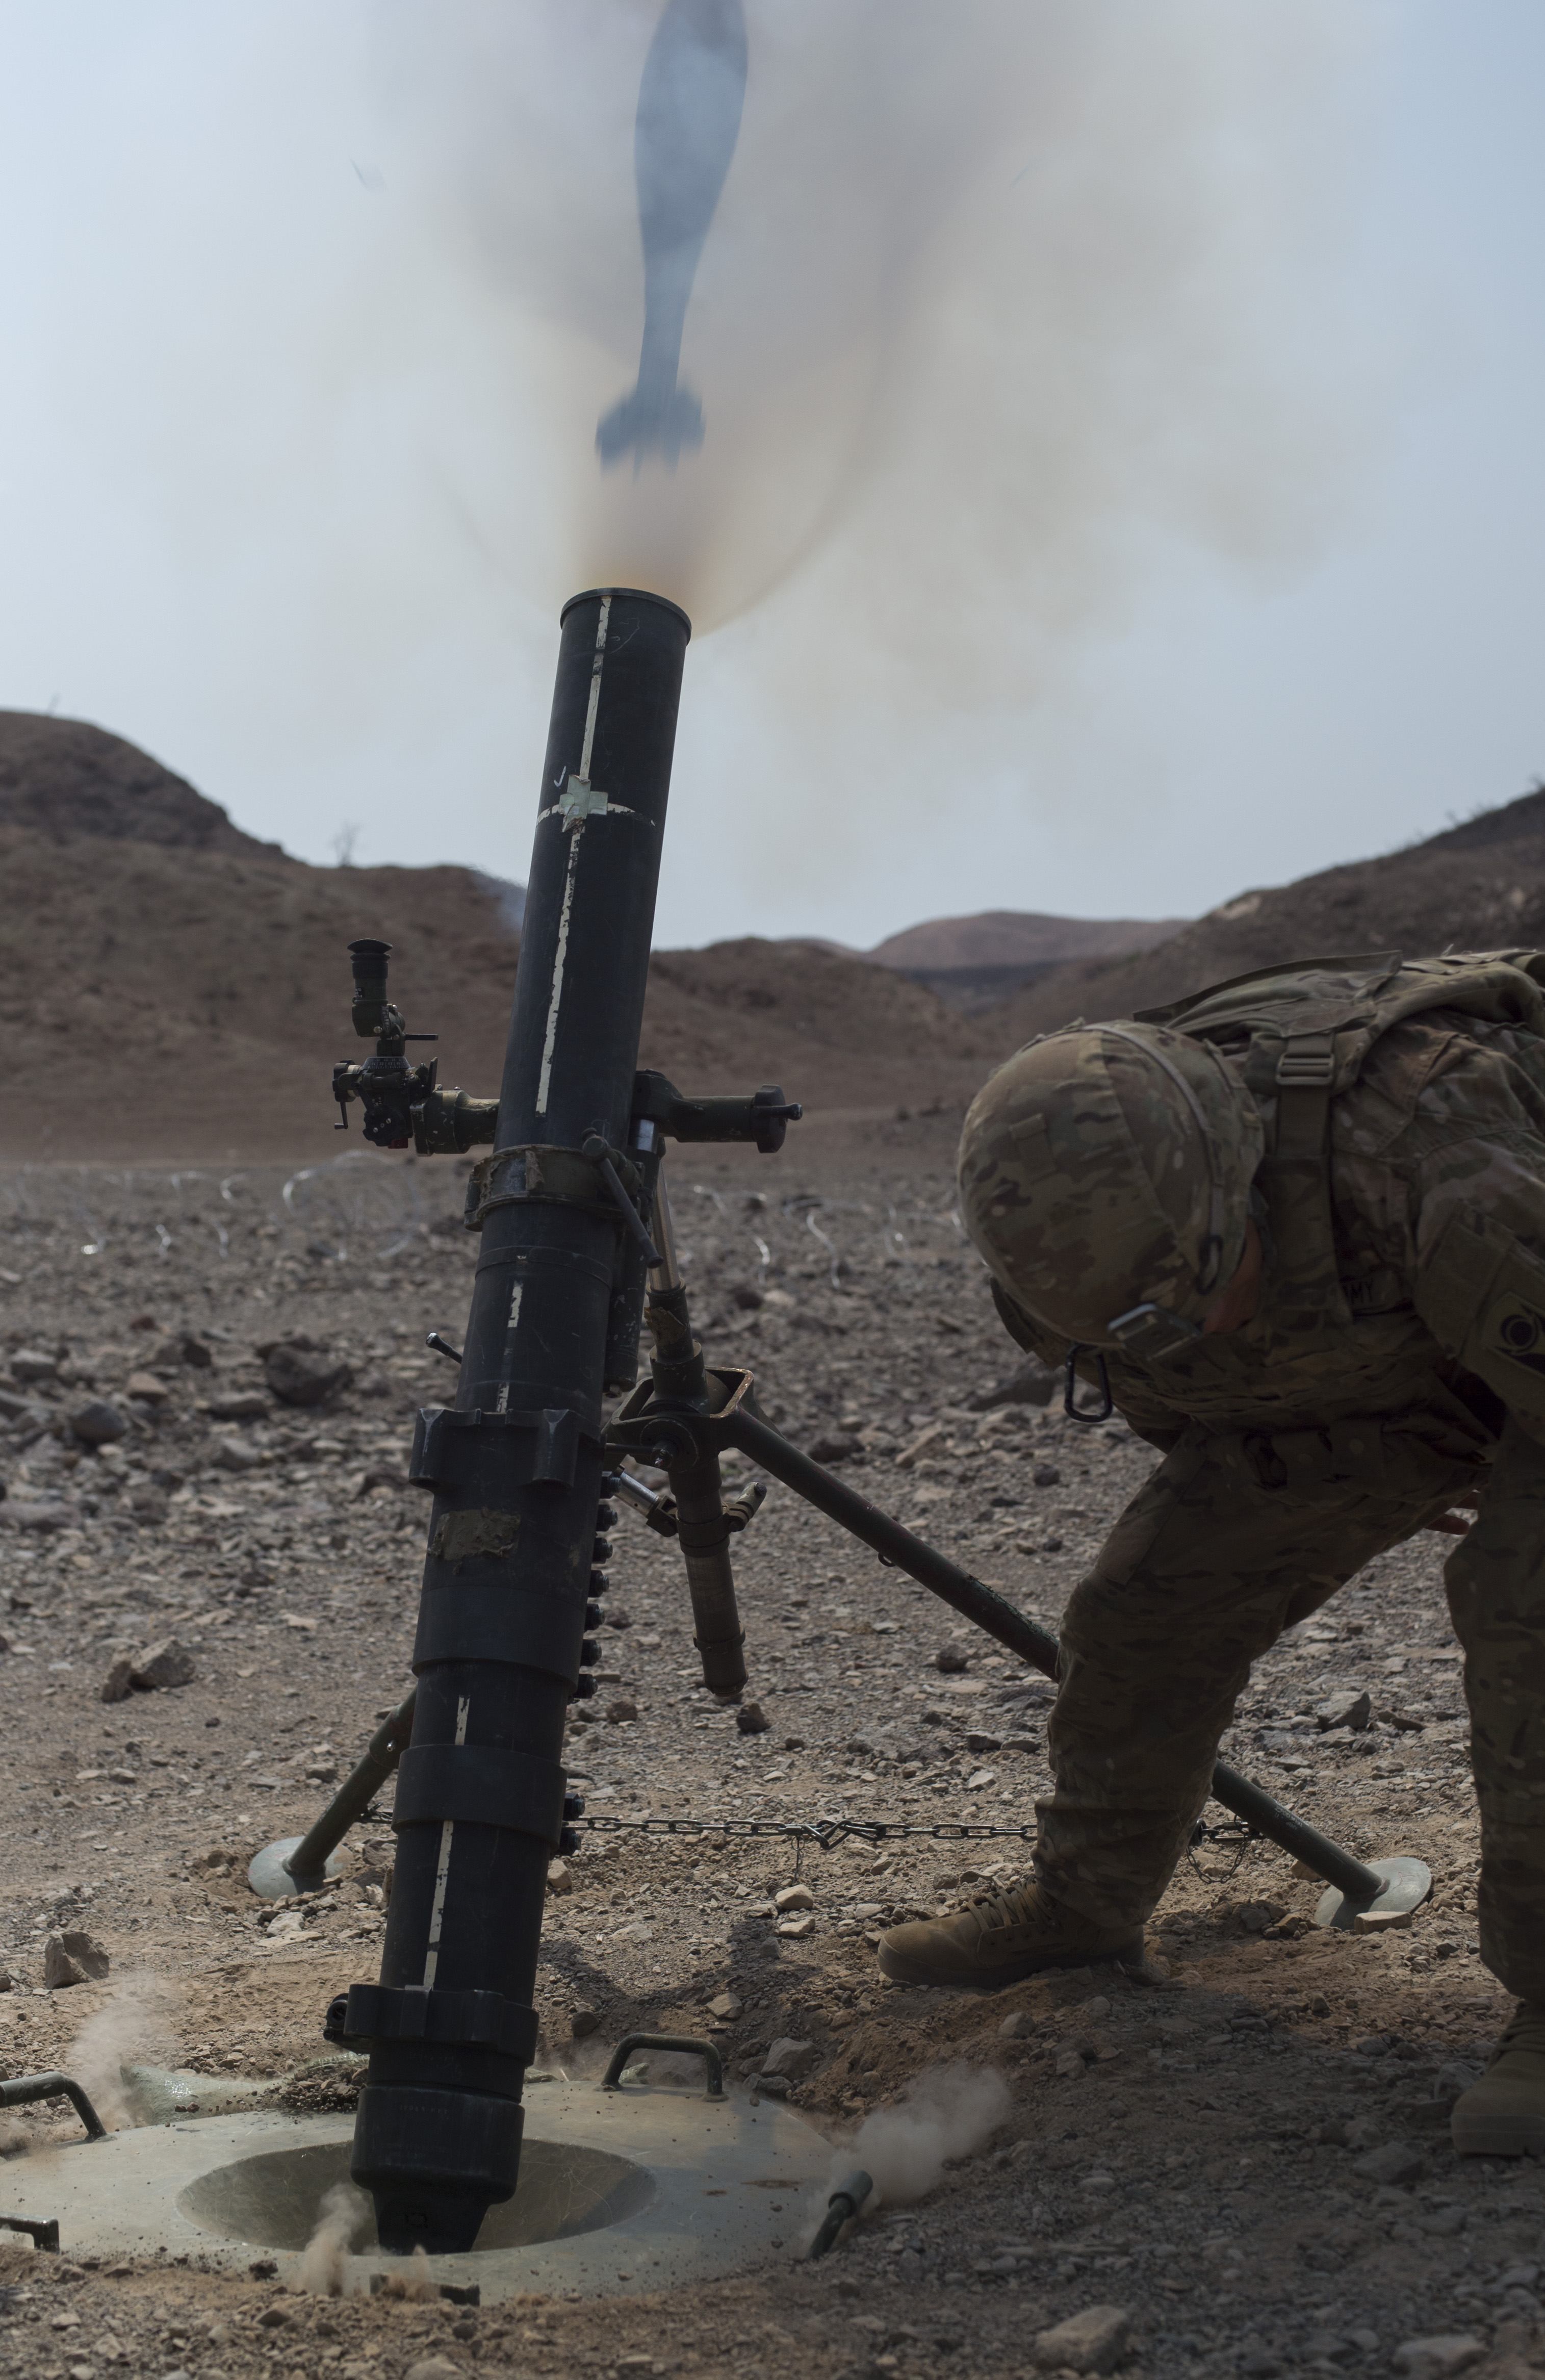 A U.S. Army Soldier from the 1st Battalion, 124th Infantry Regiment, Bravo Company fires a mortar round Aug. 8, 2016, at Arta, Djibouti. The mortar firing was part of the unit's training testing their capability to work as a team to identify a target, set-up the cannons, and accurately deploy rounds proficiently. The 1-124 is a guard unit deployed from Cocoa, Fla., to Combined Joint Task-Force Horn of Africa. (U.S. Air Force Air Force photo by Staff Sgt. Eric Summers Jr./Released)